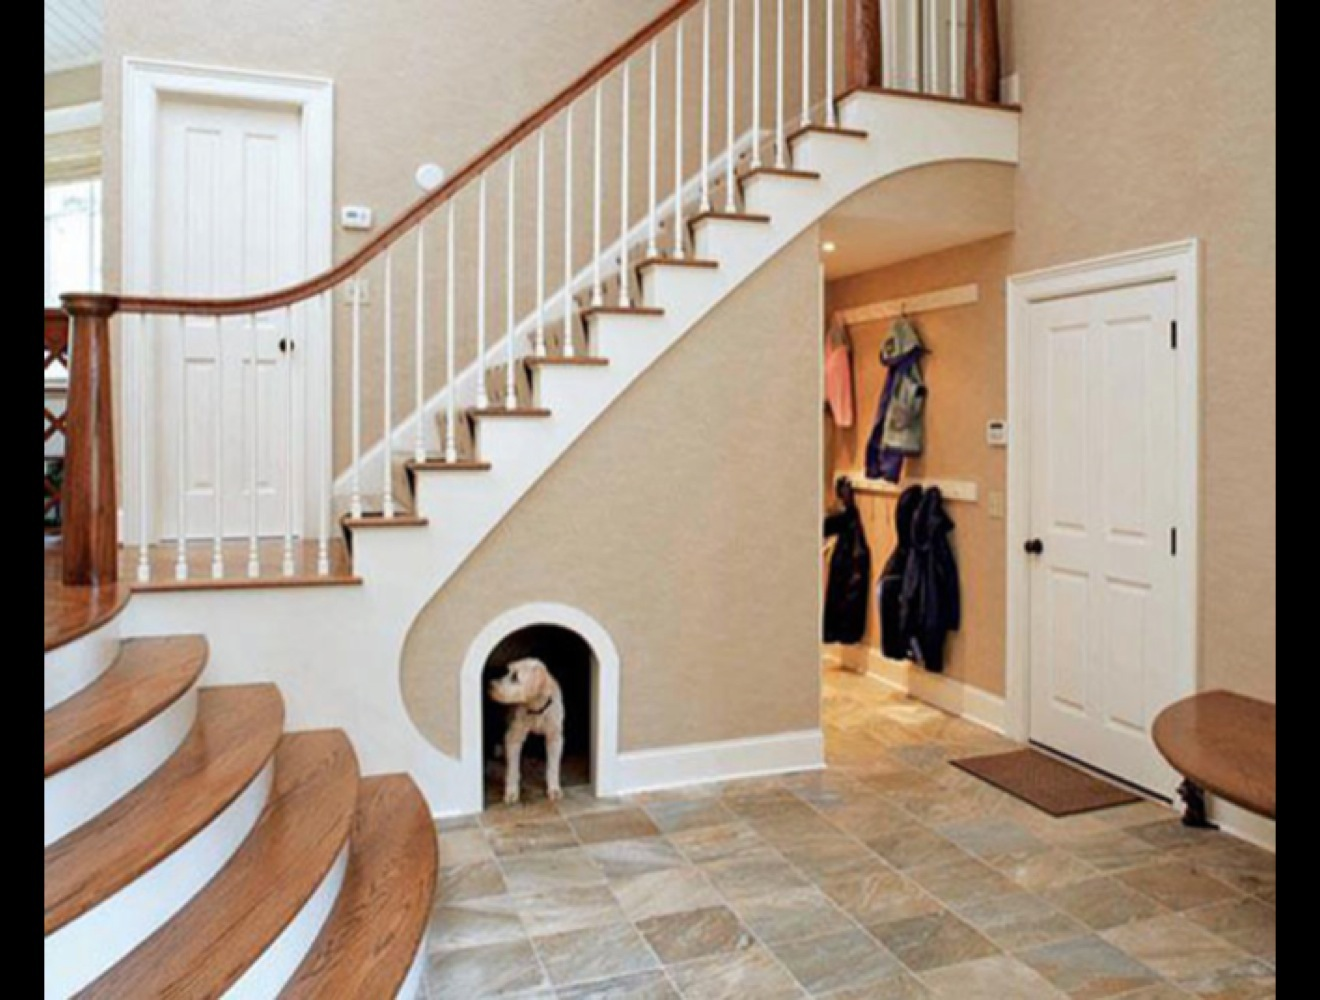 How To Build A Dog House Under Your Stairs